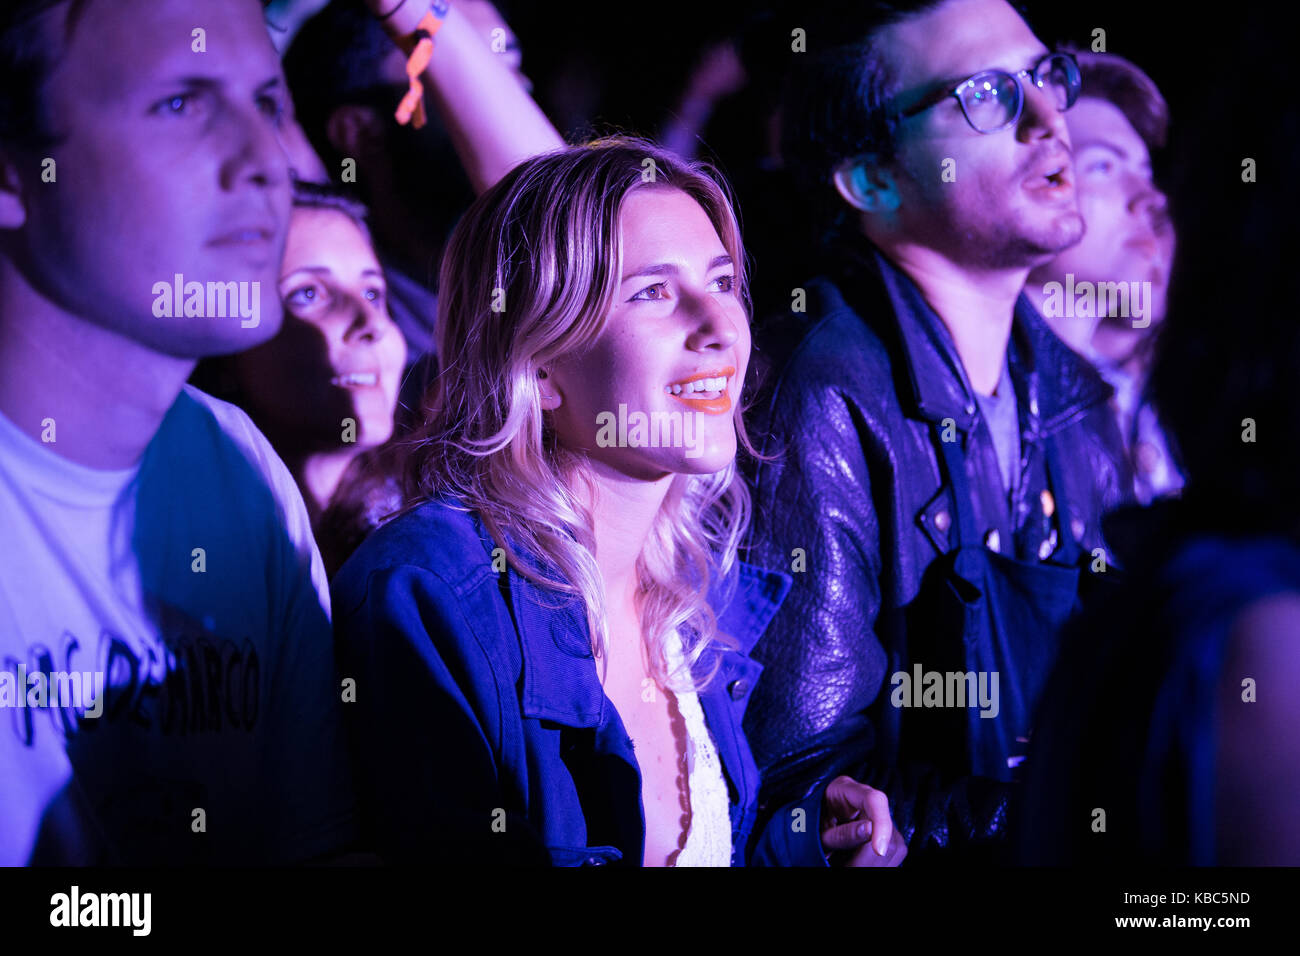 Festival goers and music fans attend a concert with the Australian band Tame Impala who performs at the music festival - Stock Image